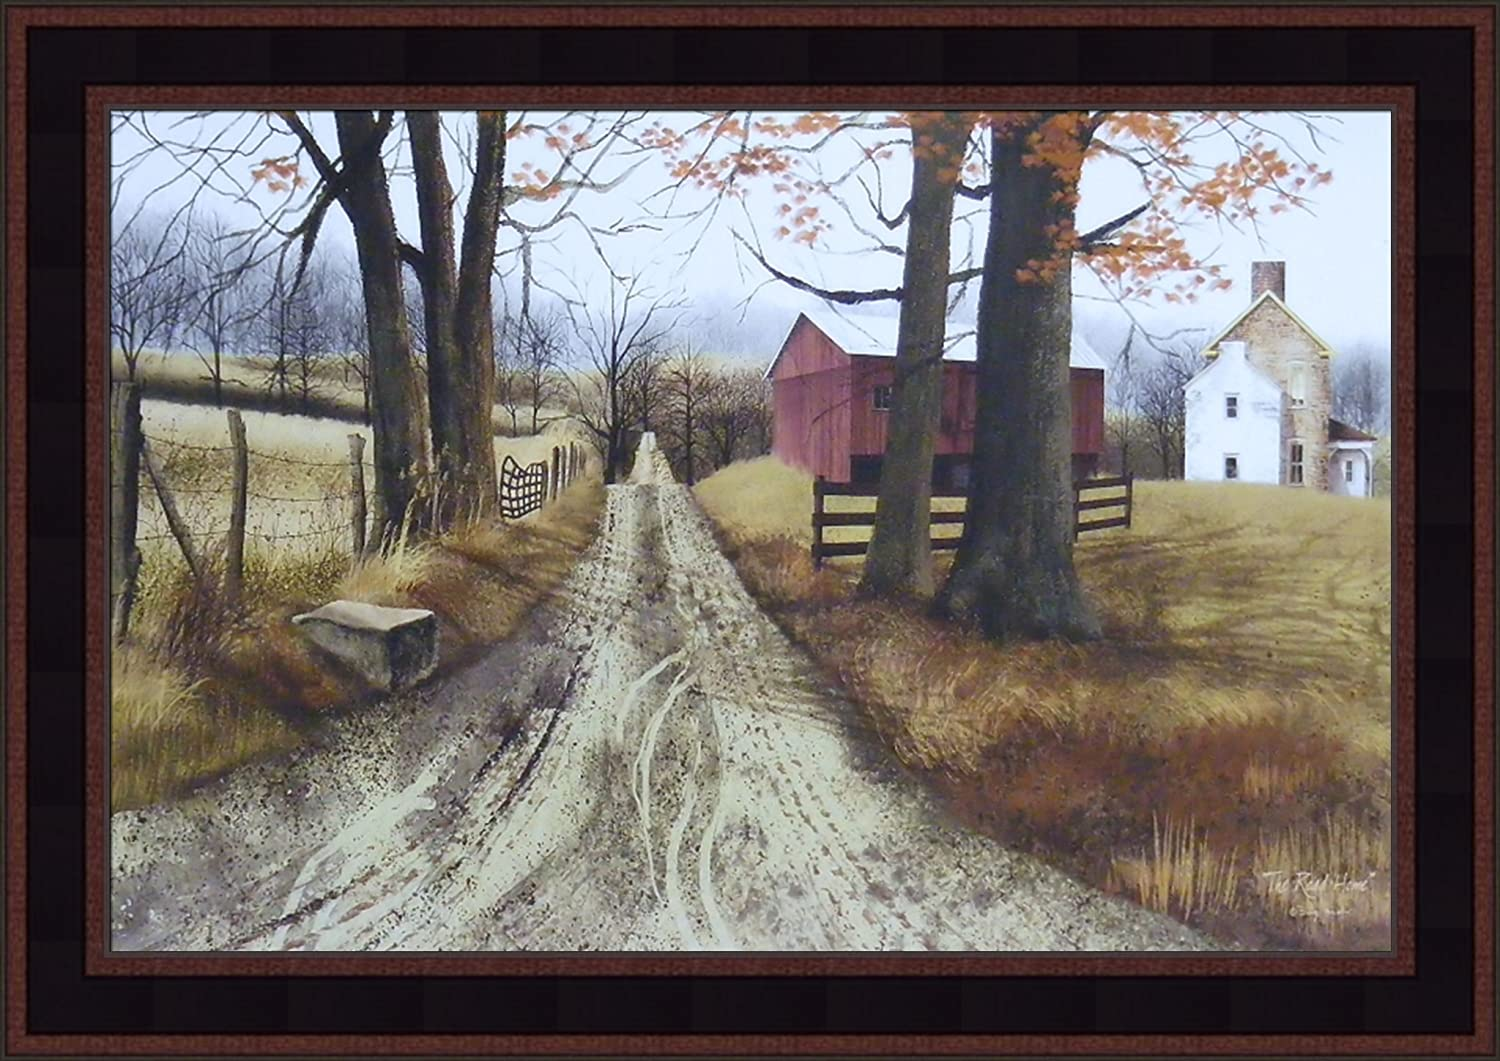 The Road Home by Billy Jacobs 15x21 Barn Country Dirt Road Farm Rural Primitive Folk Art Framed Print Picture